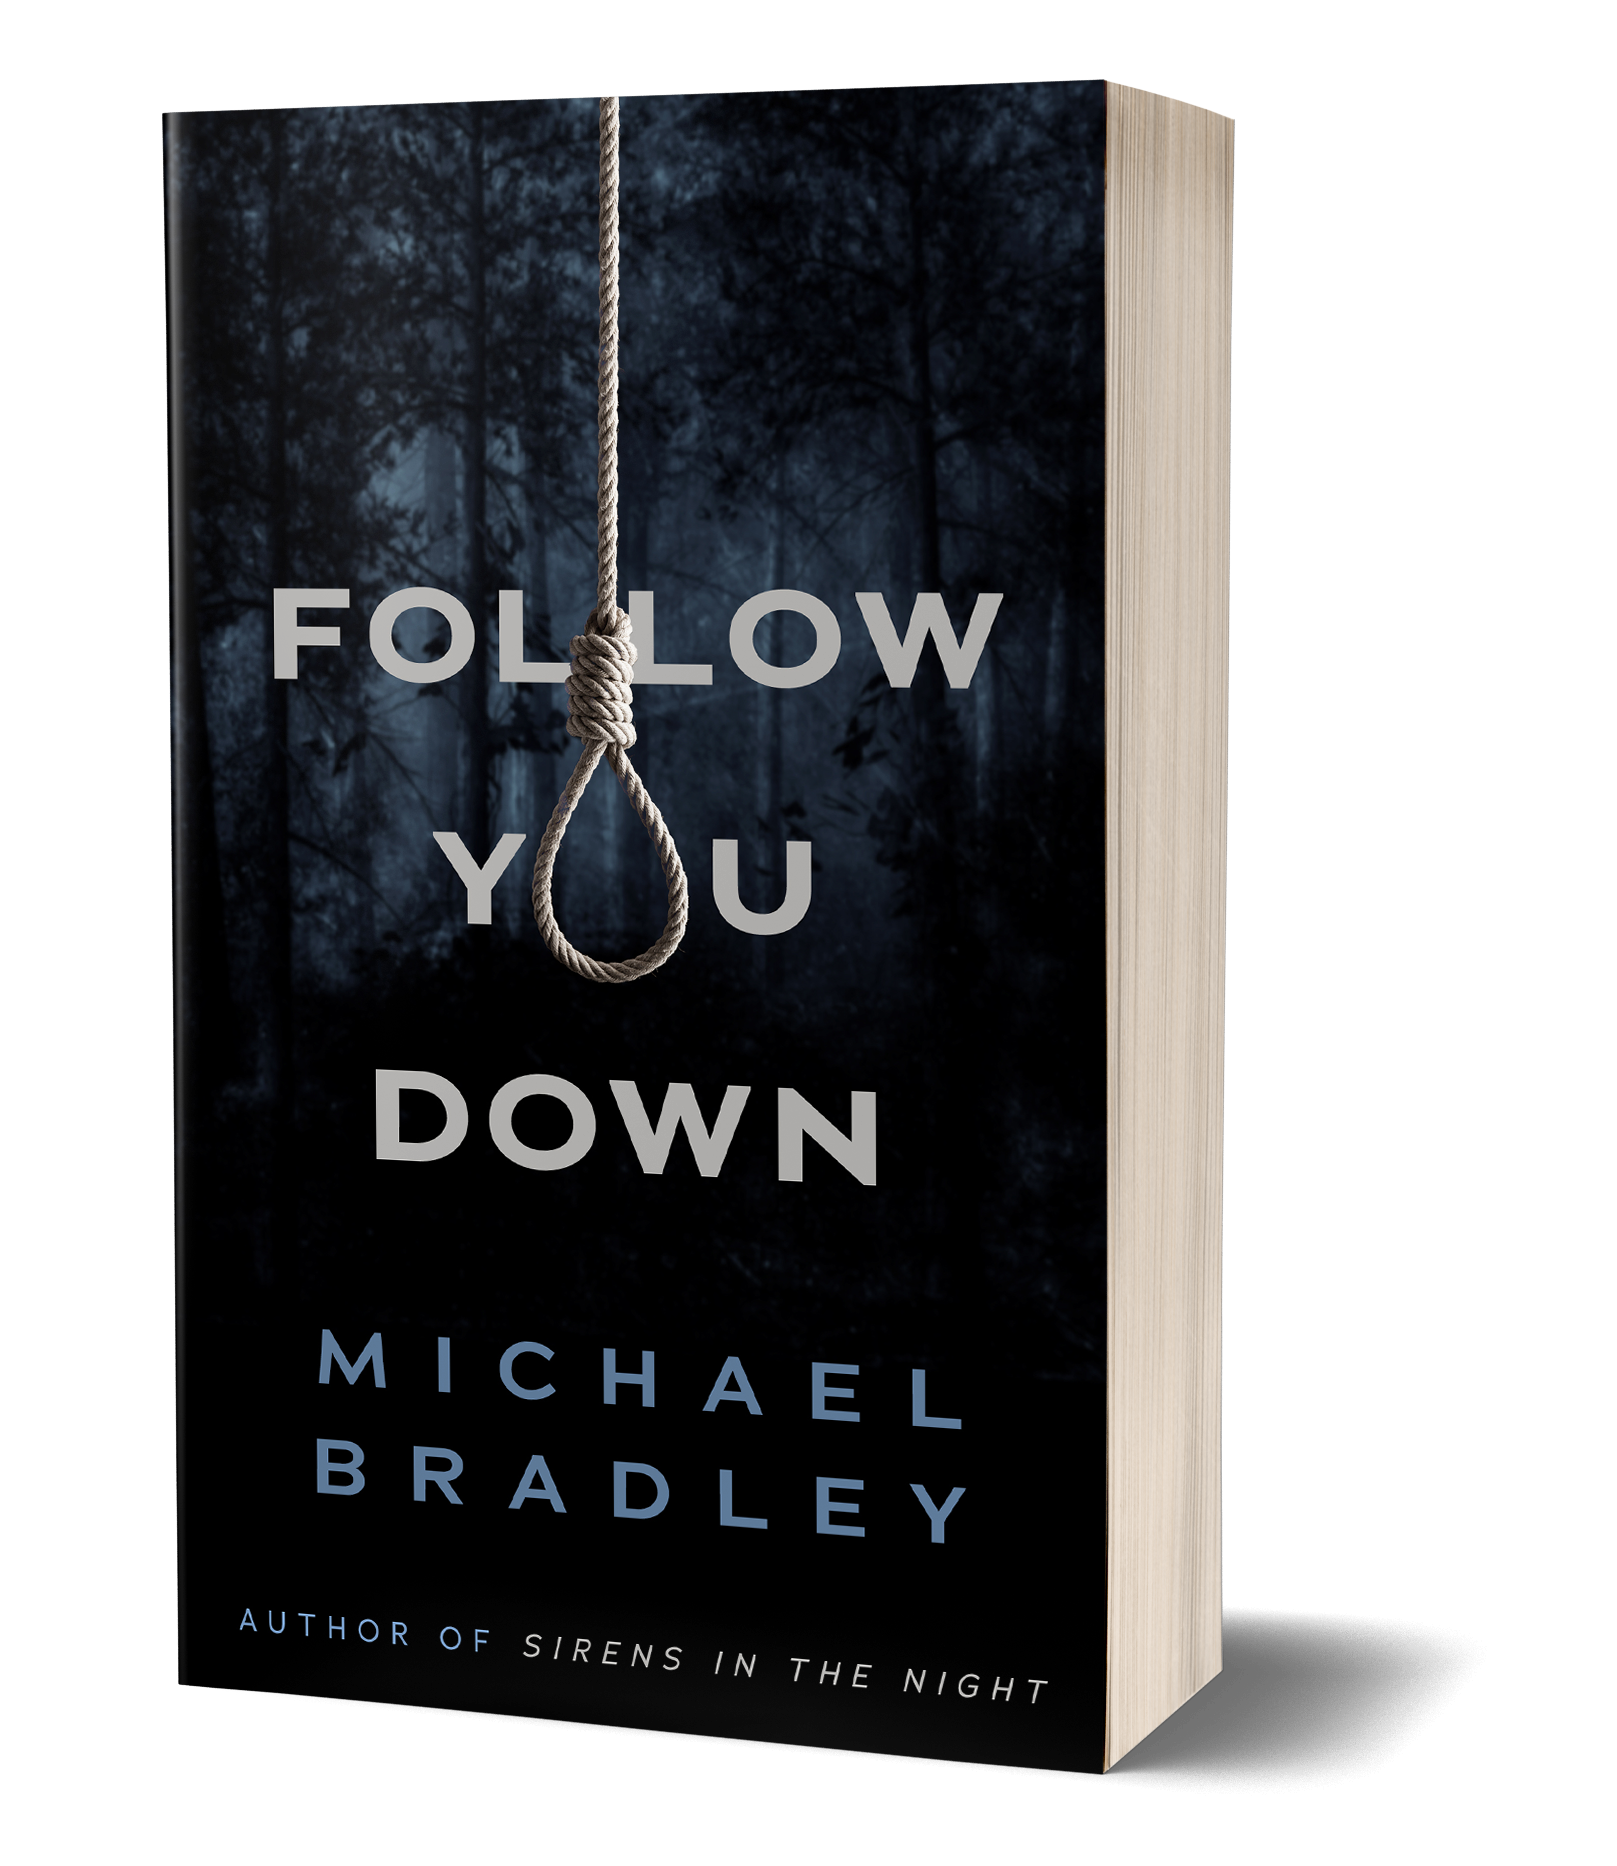 Follow You Down book cover, Rope hanging from top of page, tied in noose with dark trees and forest in the background